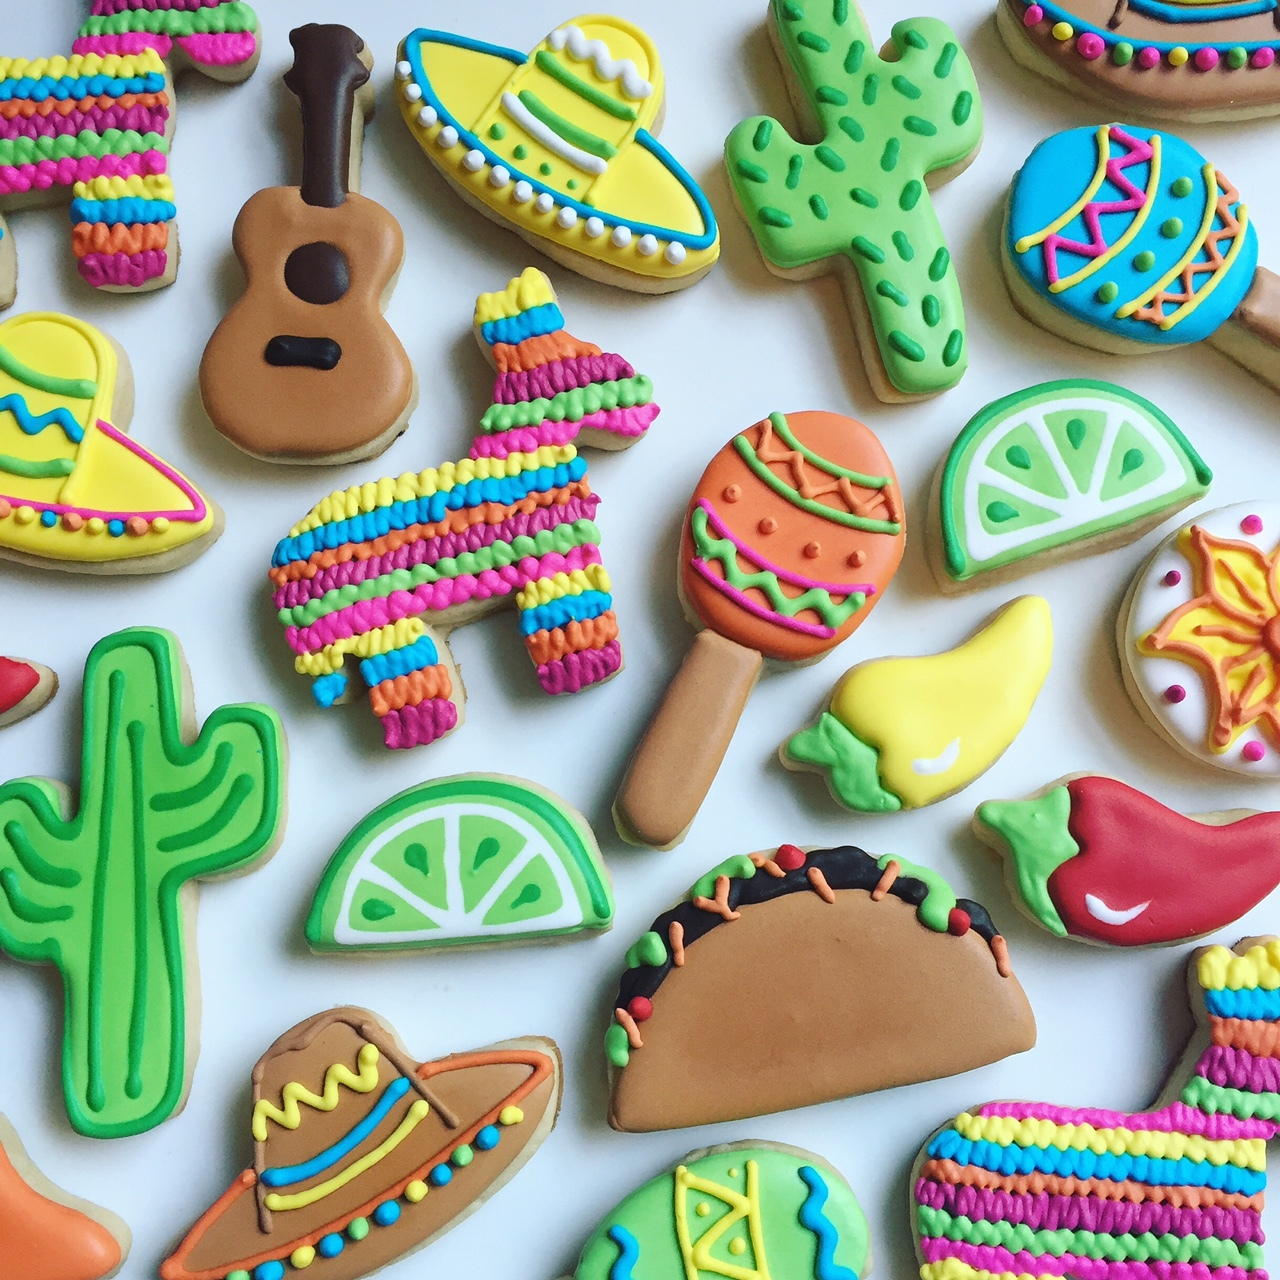 10 Genius Cookie Decorating Hacks Your Kids Can Easily